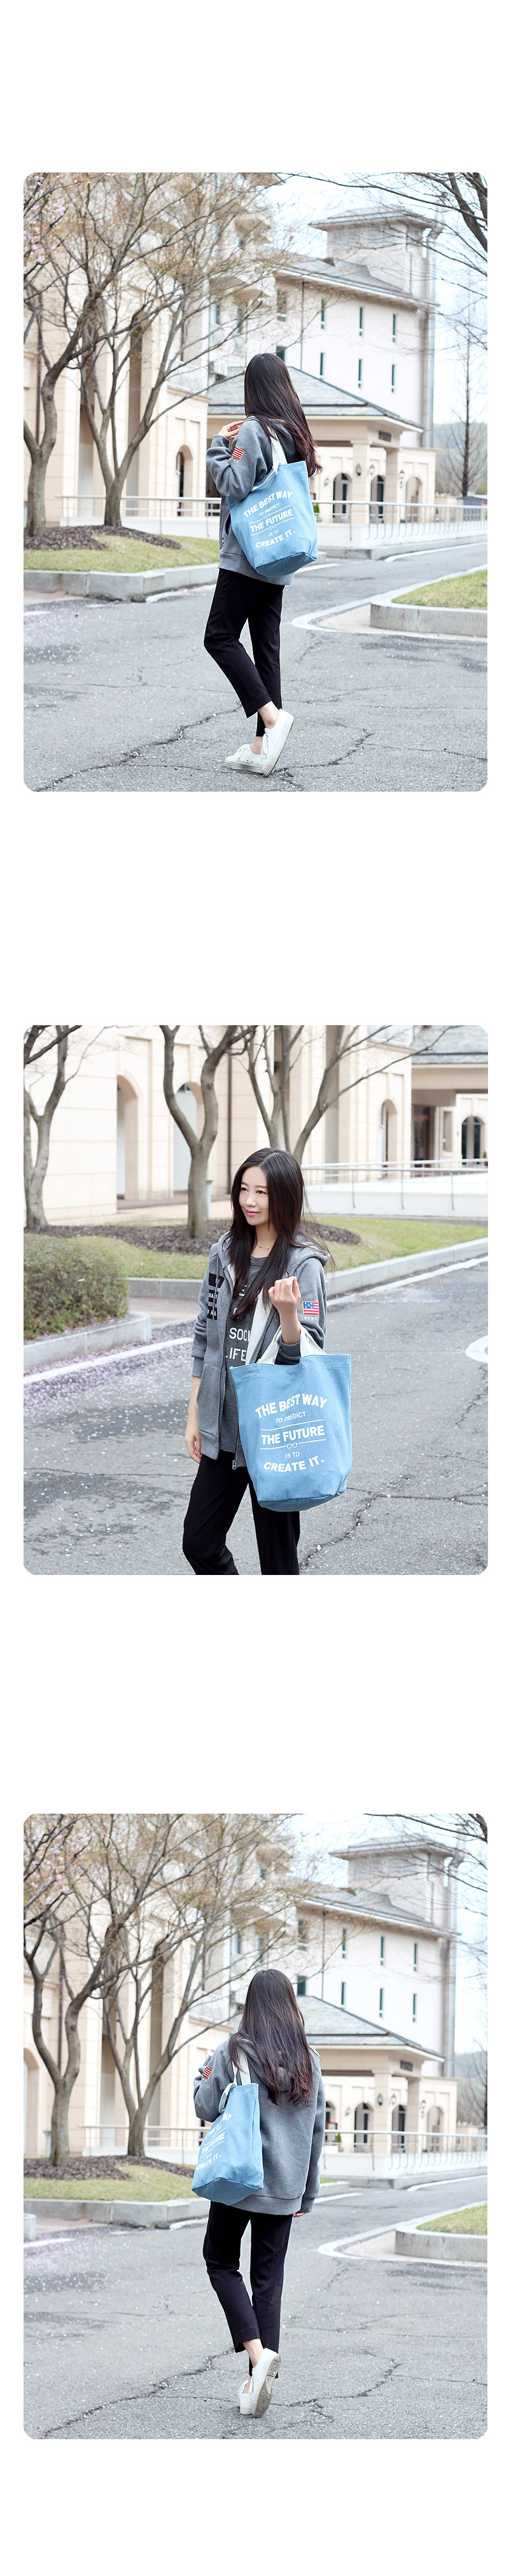 Shoulder&tote bag no.K85063view